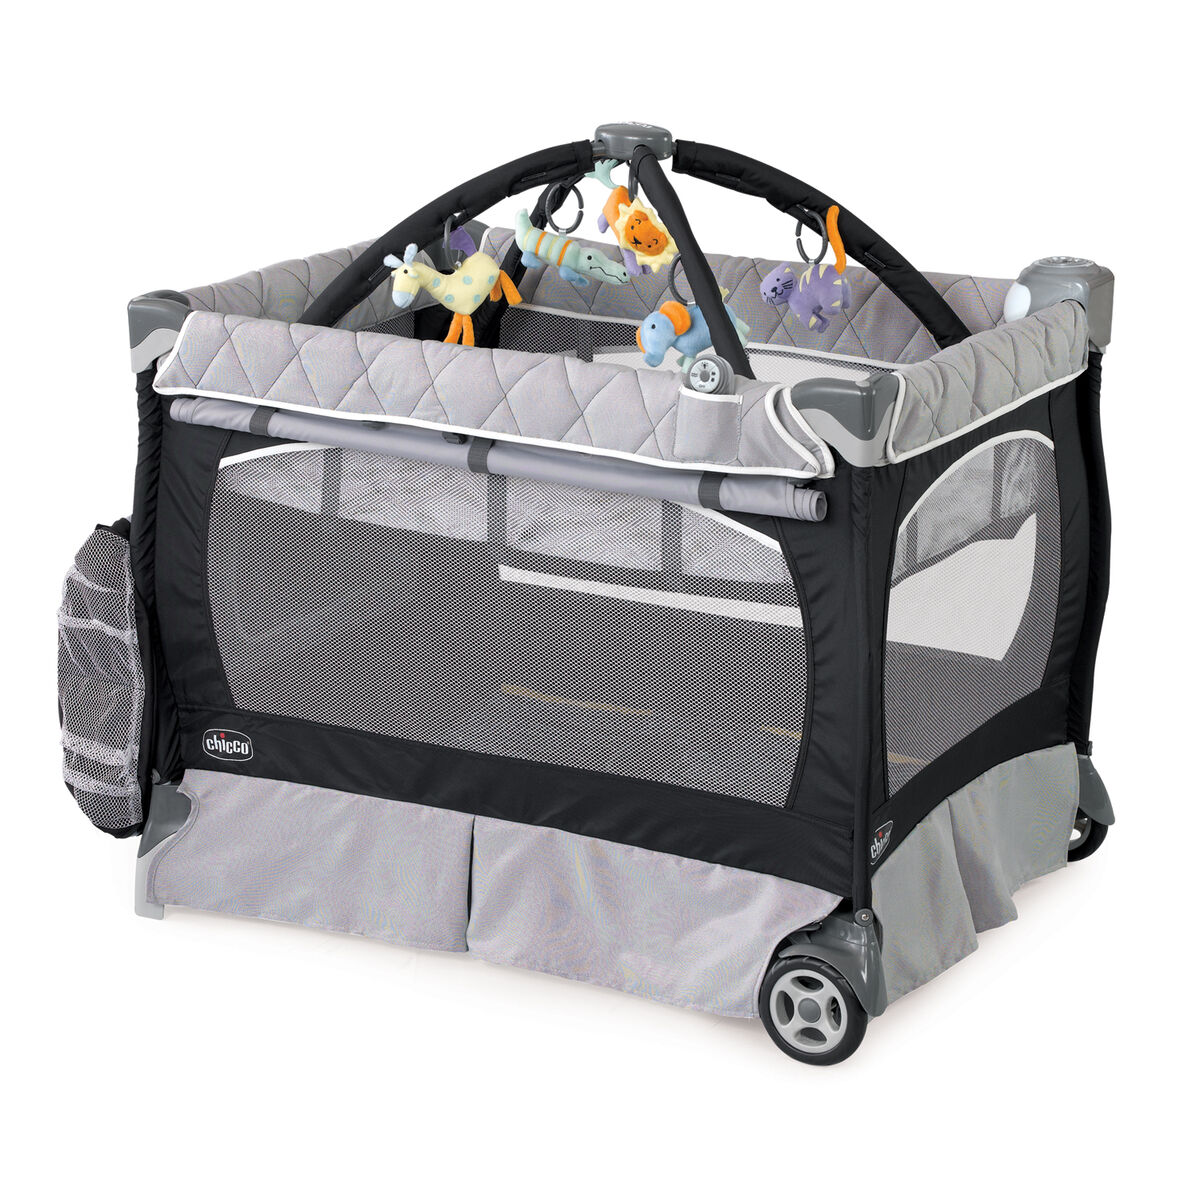 Chicco Chicco Lullaby Lx Playard Romantic